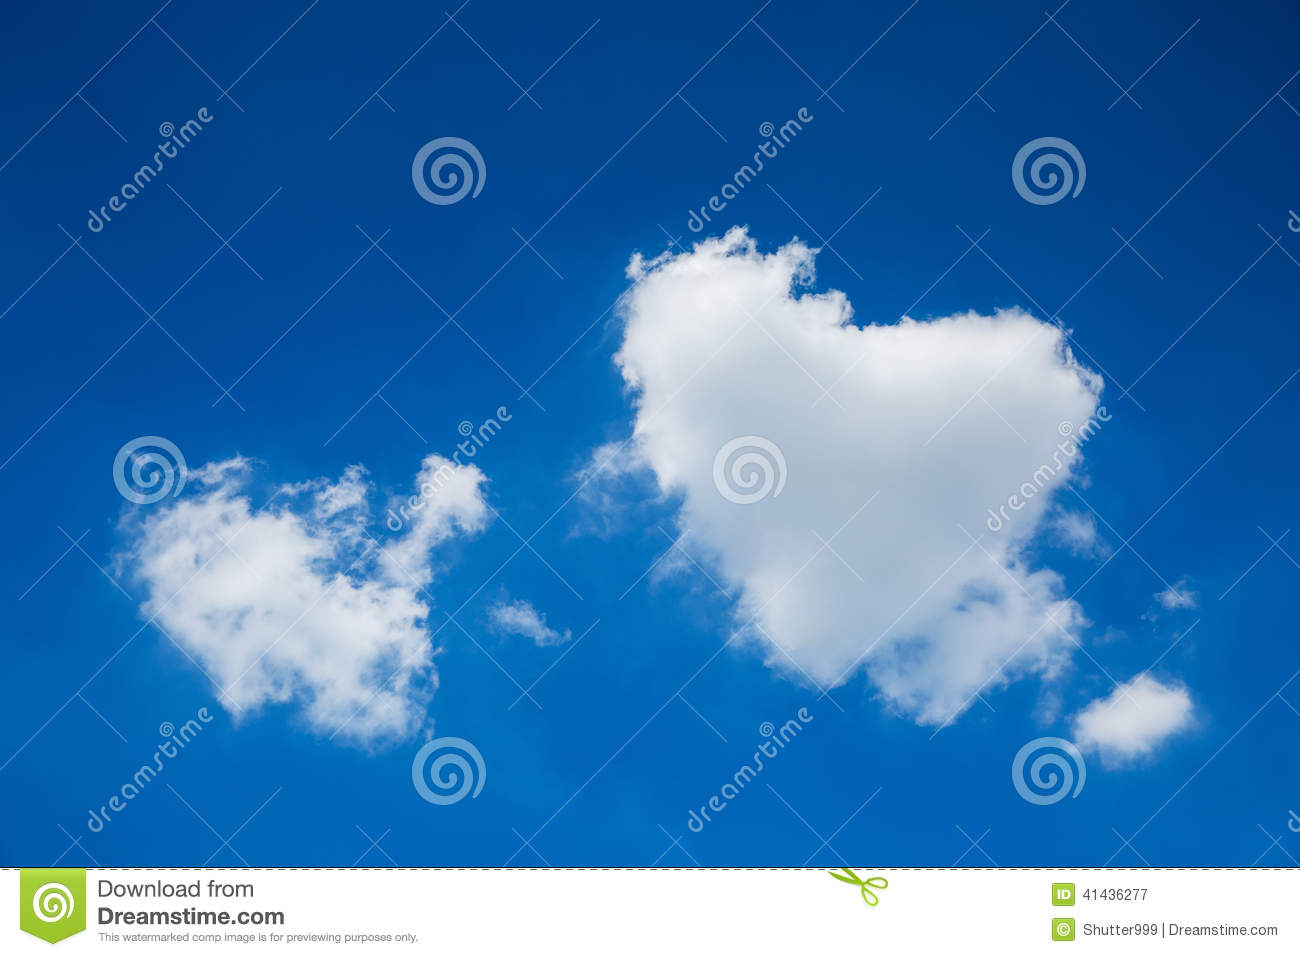 Cloud in the form of heart on blue sky